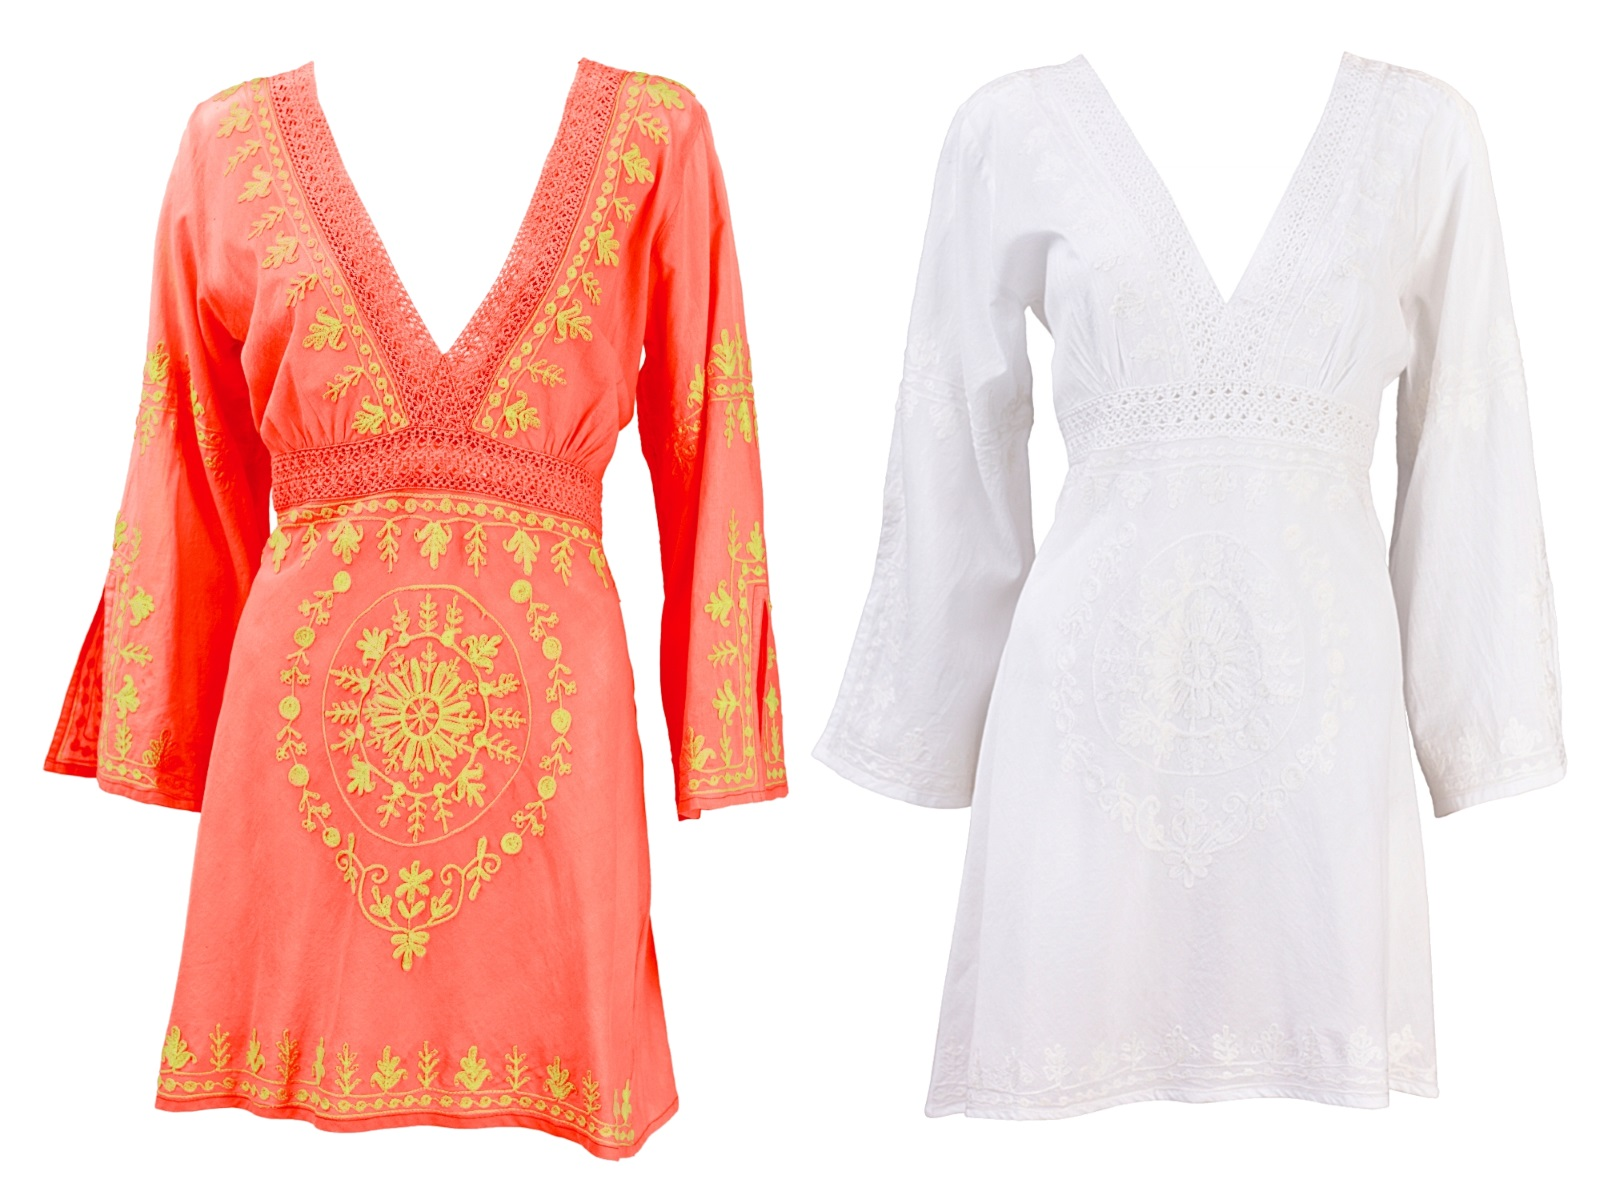 92d9599a0584c Womens Kaftan V Neck Embroidered Dress Summer Beach Cover Up Ladies Size UK  6-16